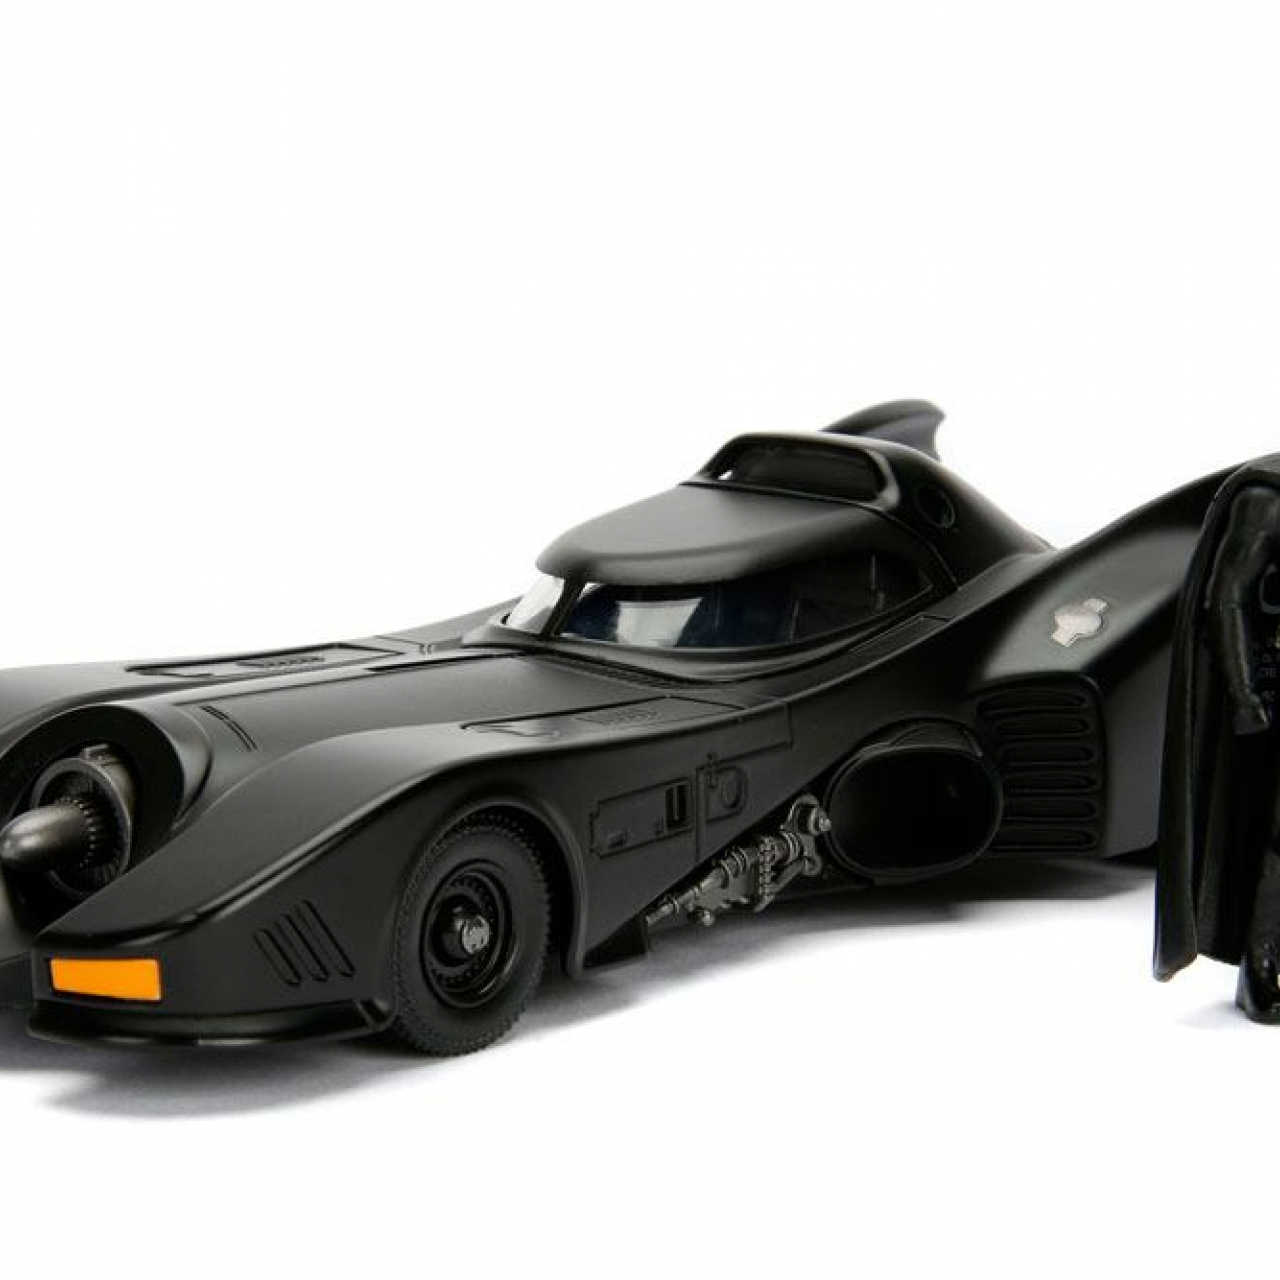 Batman Build N' Collect Diecast Kit 1/24 1989 Batmobile with Batman figure